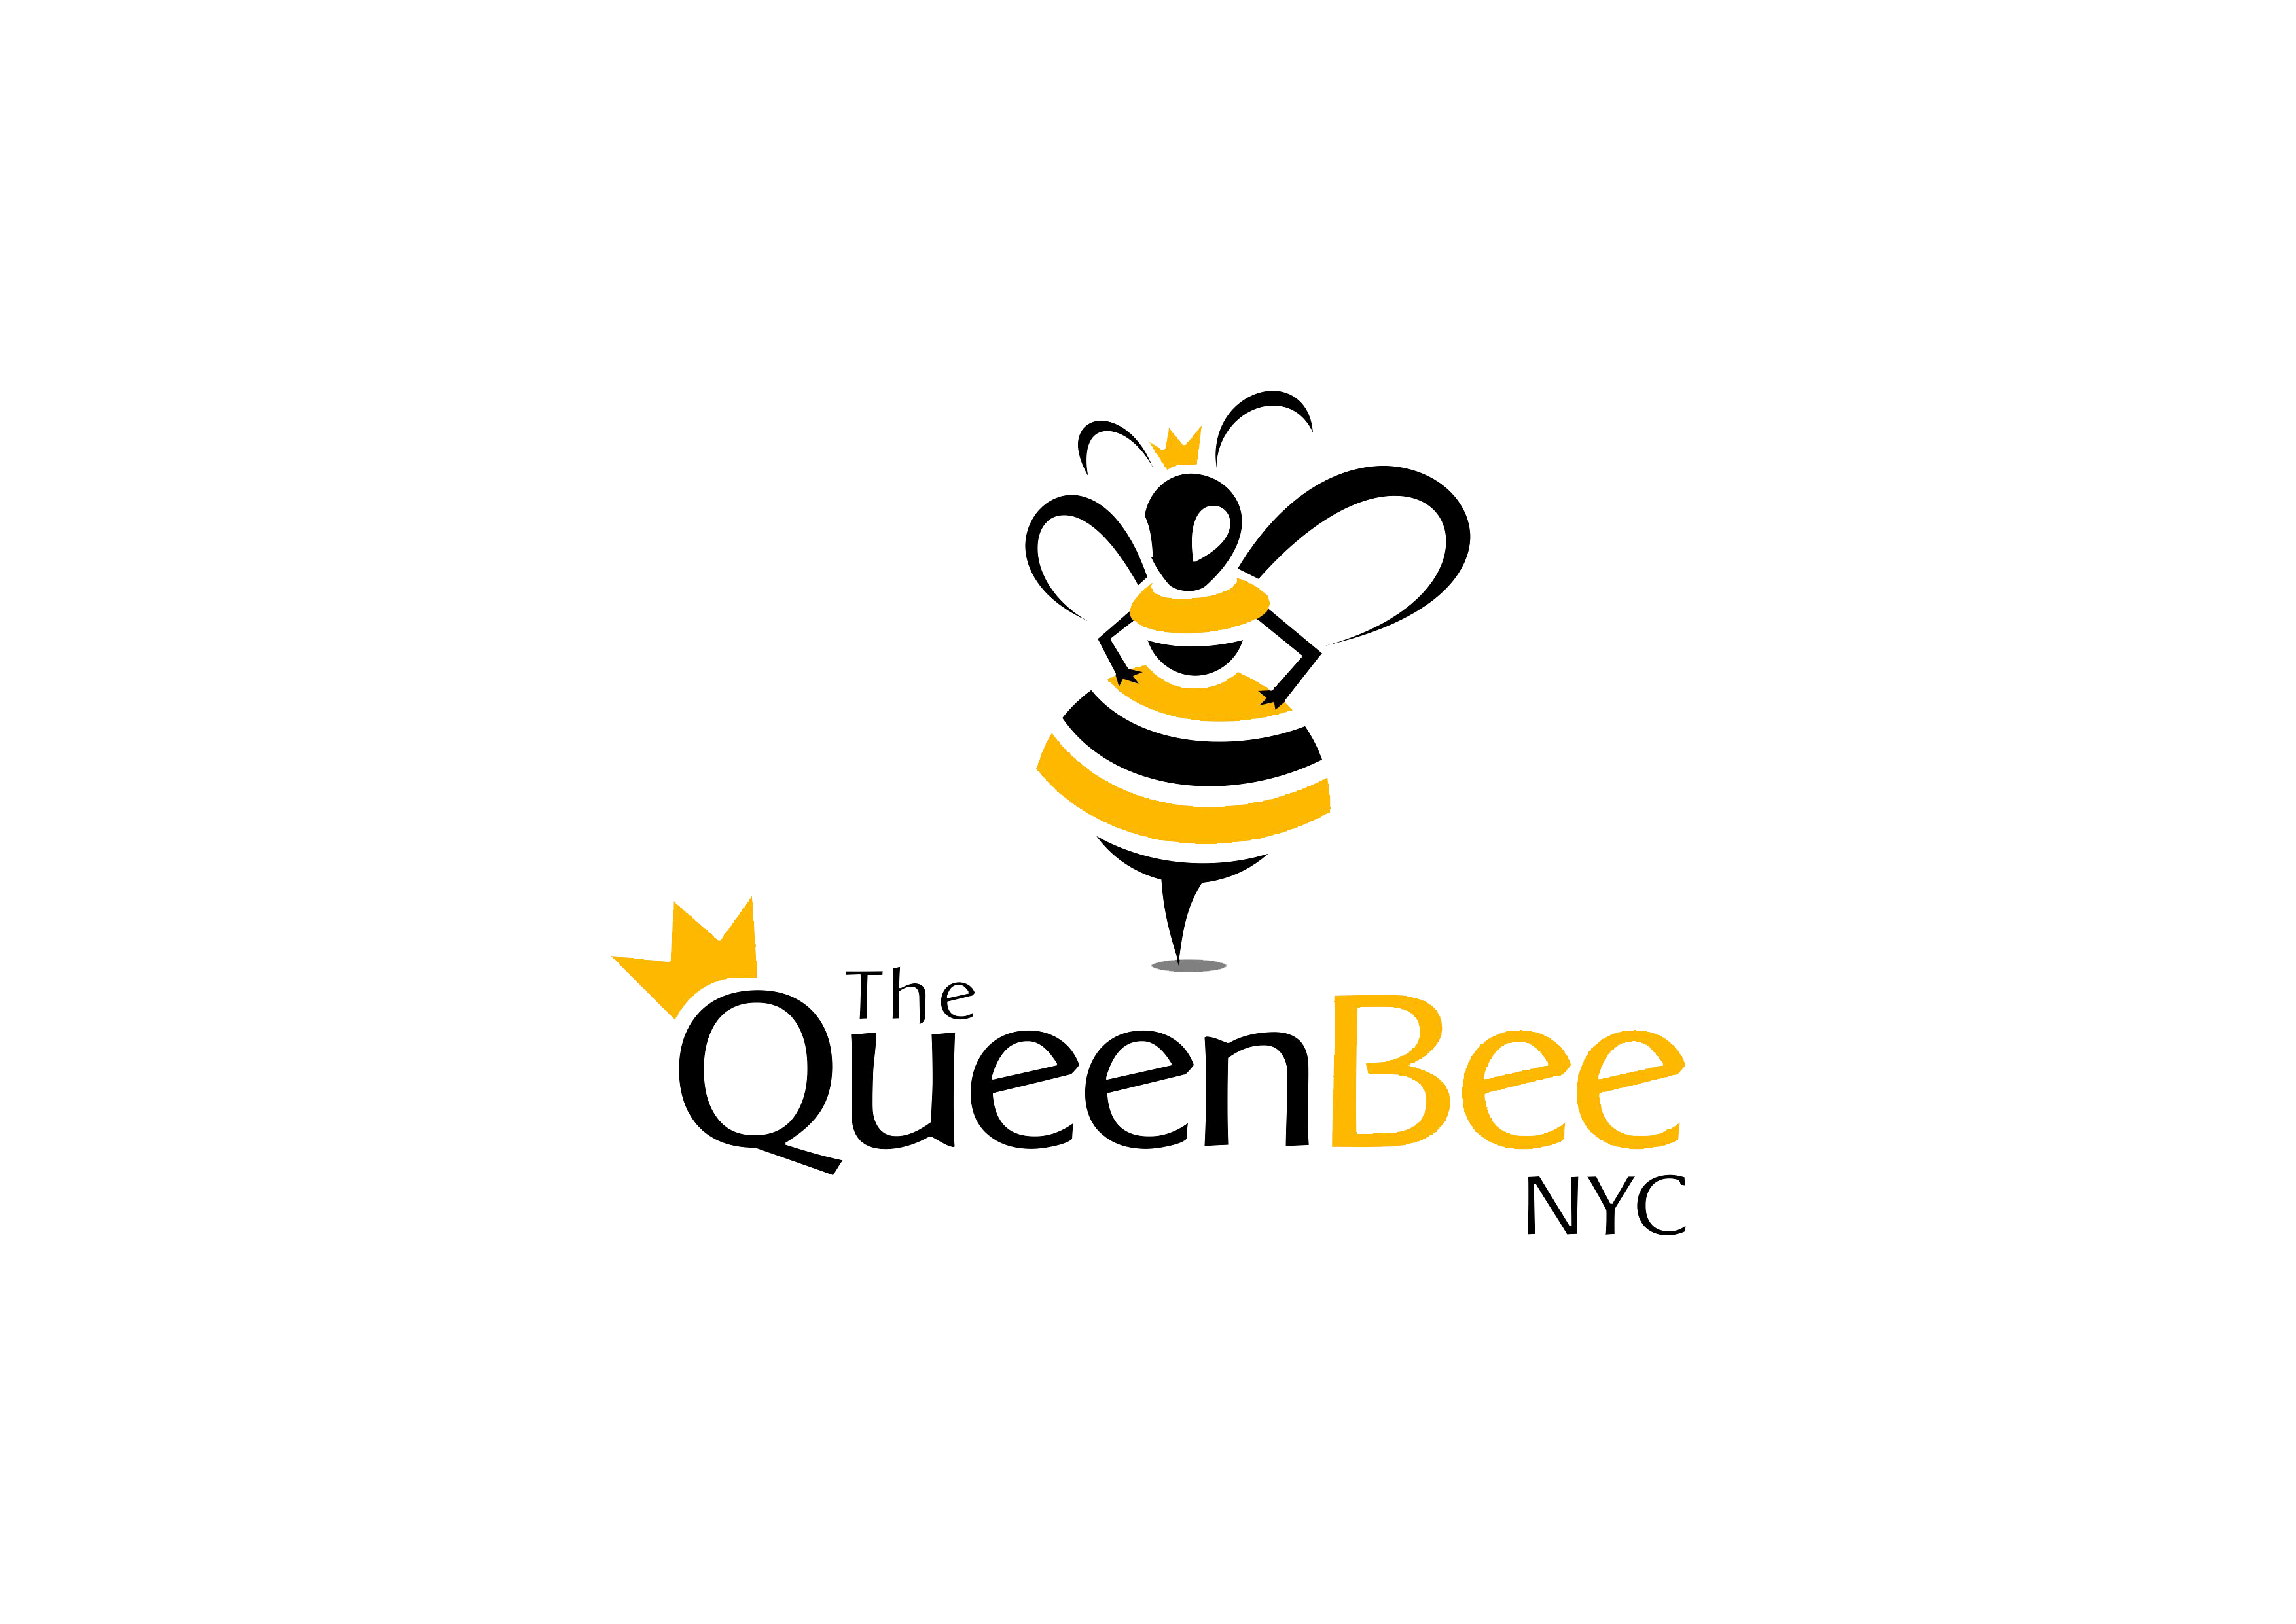 Bees transparent queen. Quotes about bee qeenbee